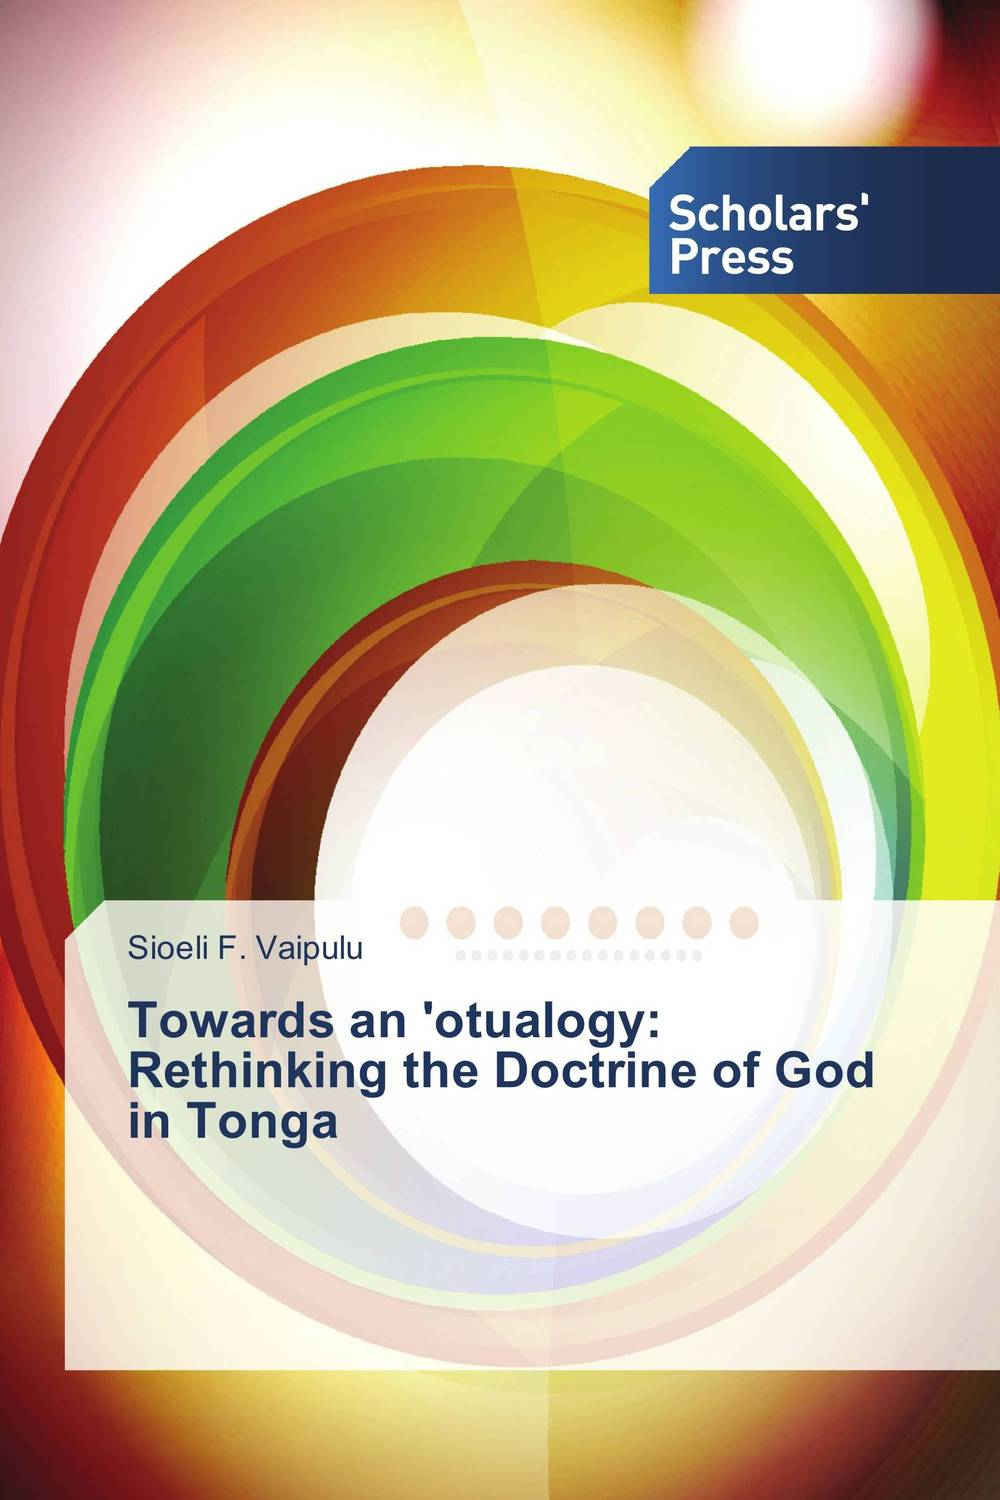 Towards an 'otualogy: Rethinking the Doctrine of God in Tonga sola scriptura benedict xvi s theology of the word of god